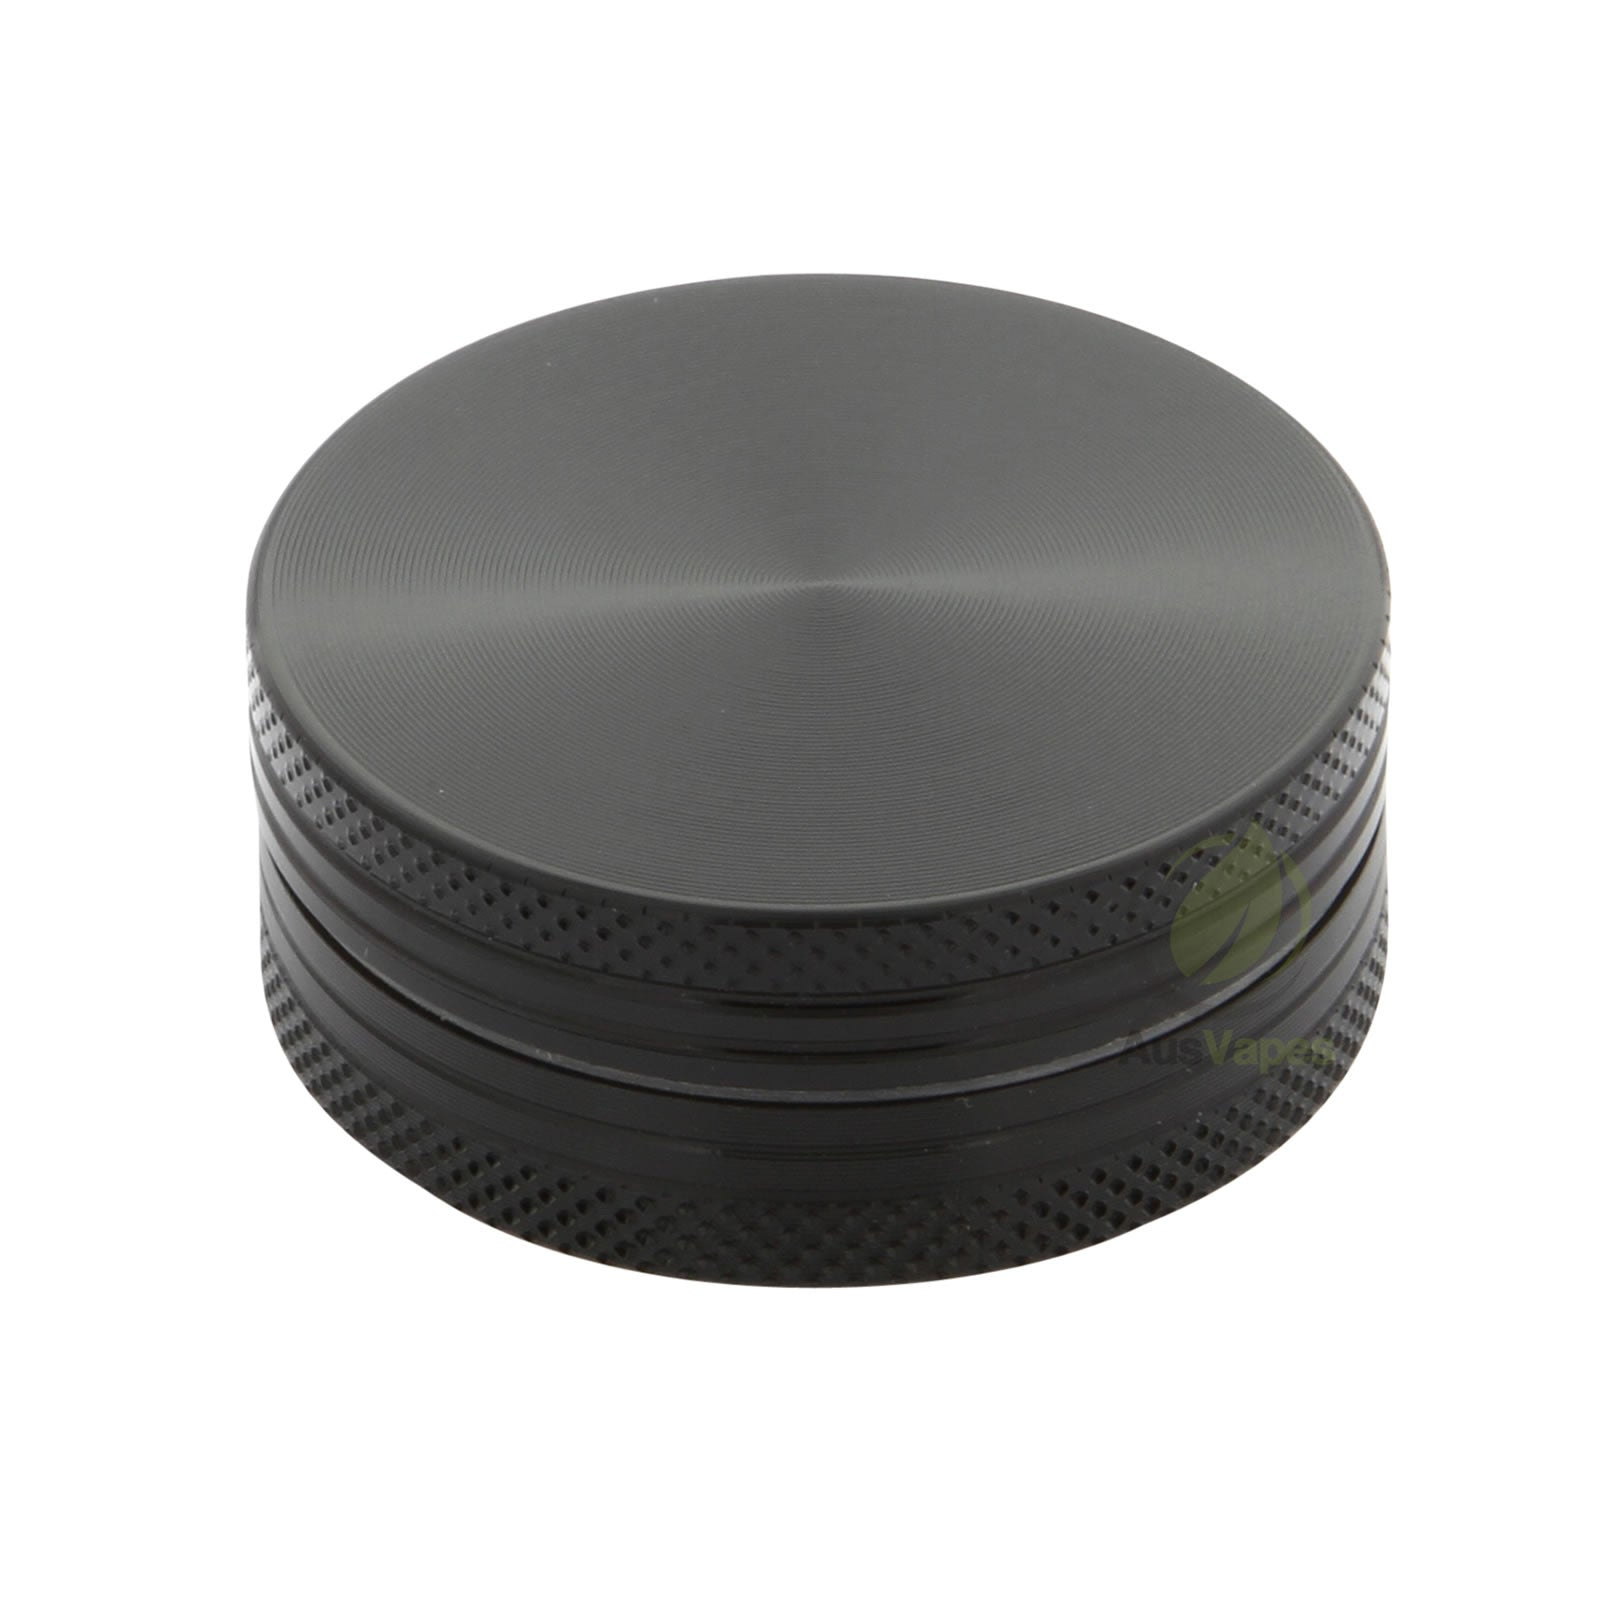 Pocket Size Black Aluminium Grinder 40mm - 2 pc.